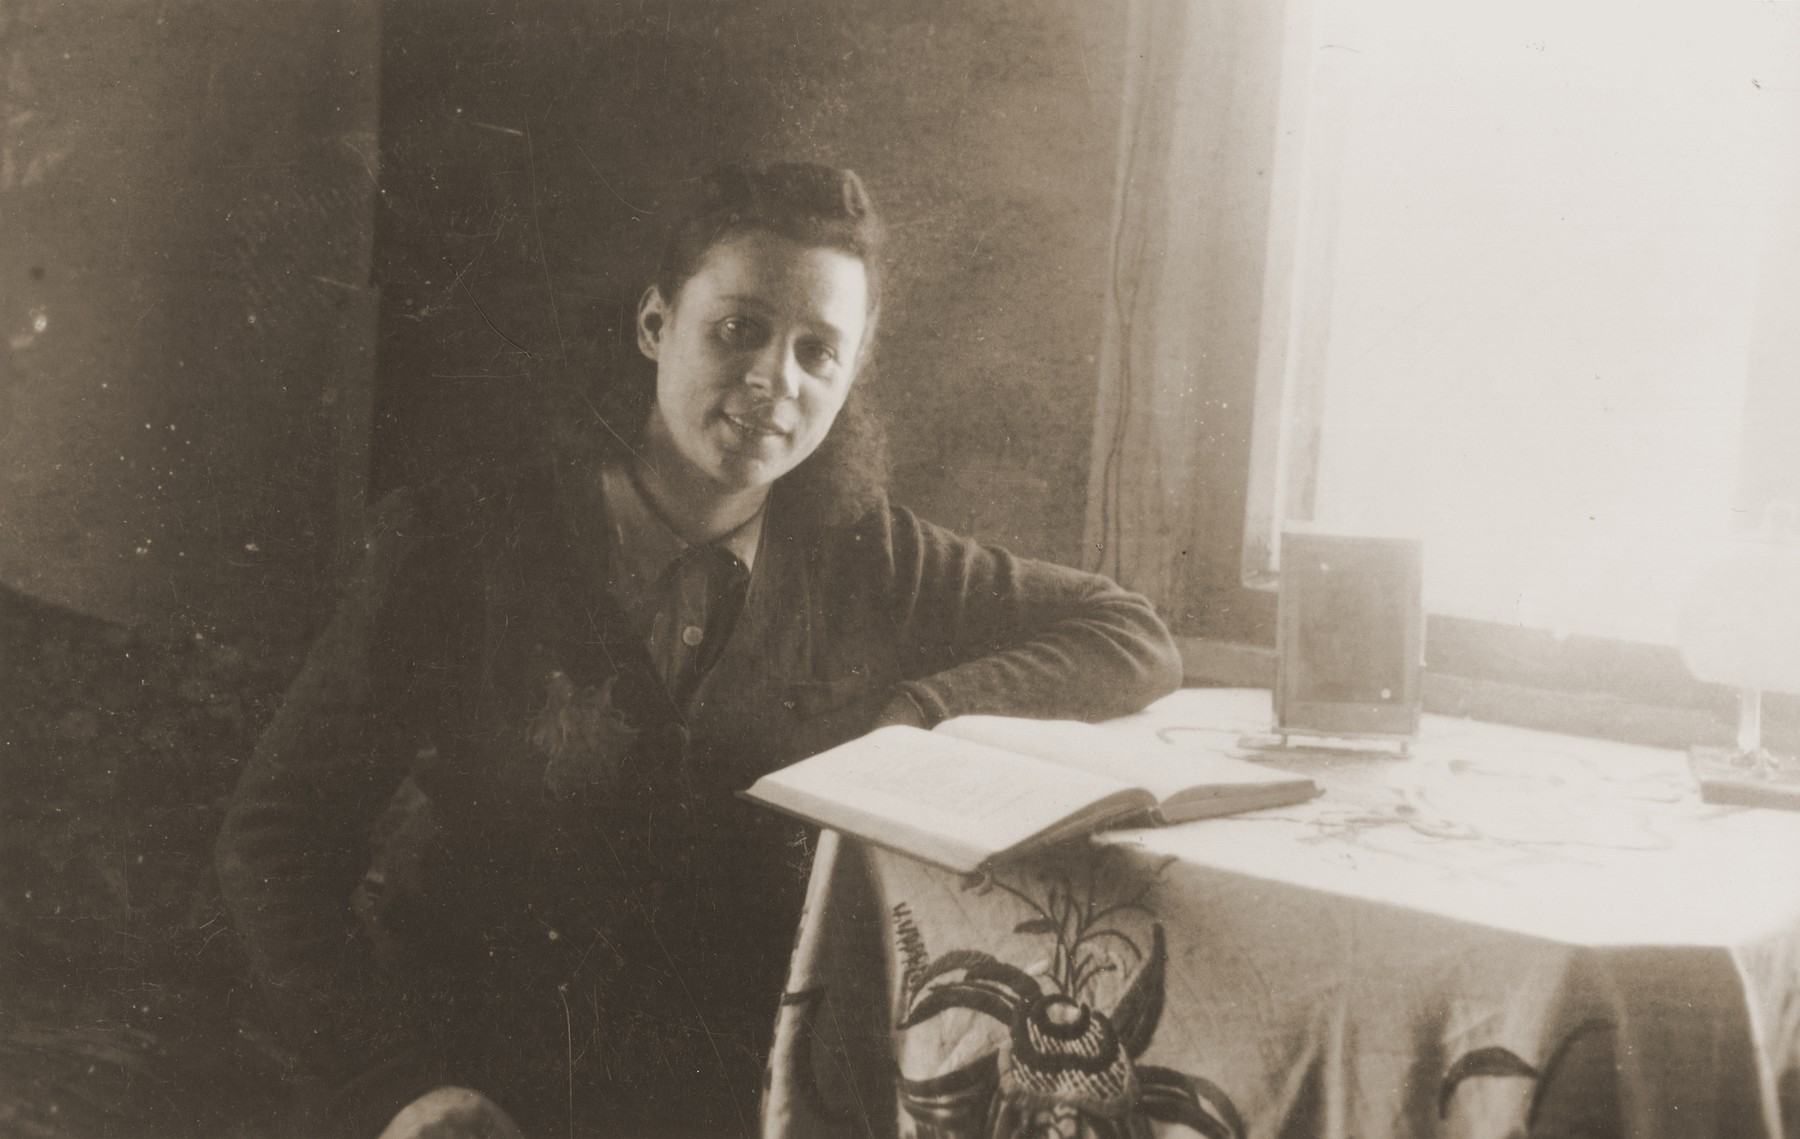 Zoia Bershtanski sits in front of an open book at a table in her room in the Kovno ghetto.  Zoia Bershtanski lived with her married sister, Meri Karnovski, in the ghetto.  Both died in a bunker when the Germans set the ghetto on fire in July 1944.  The photographer, David Ratner, was a friend and a member of the Communist underground.